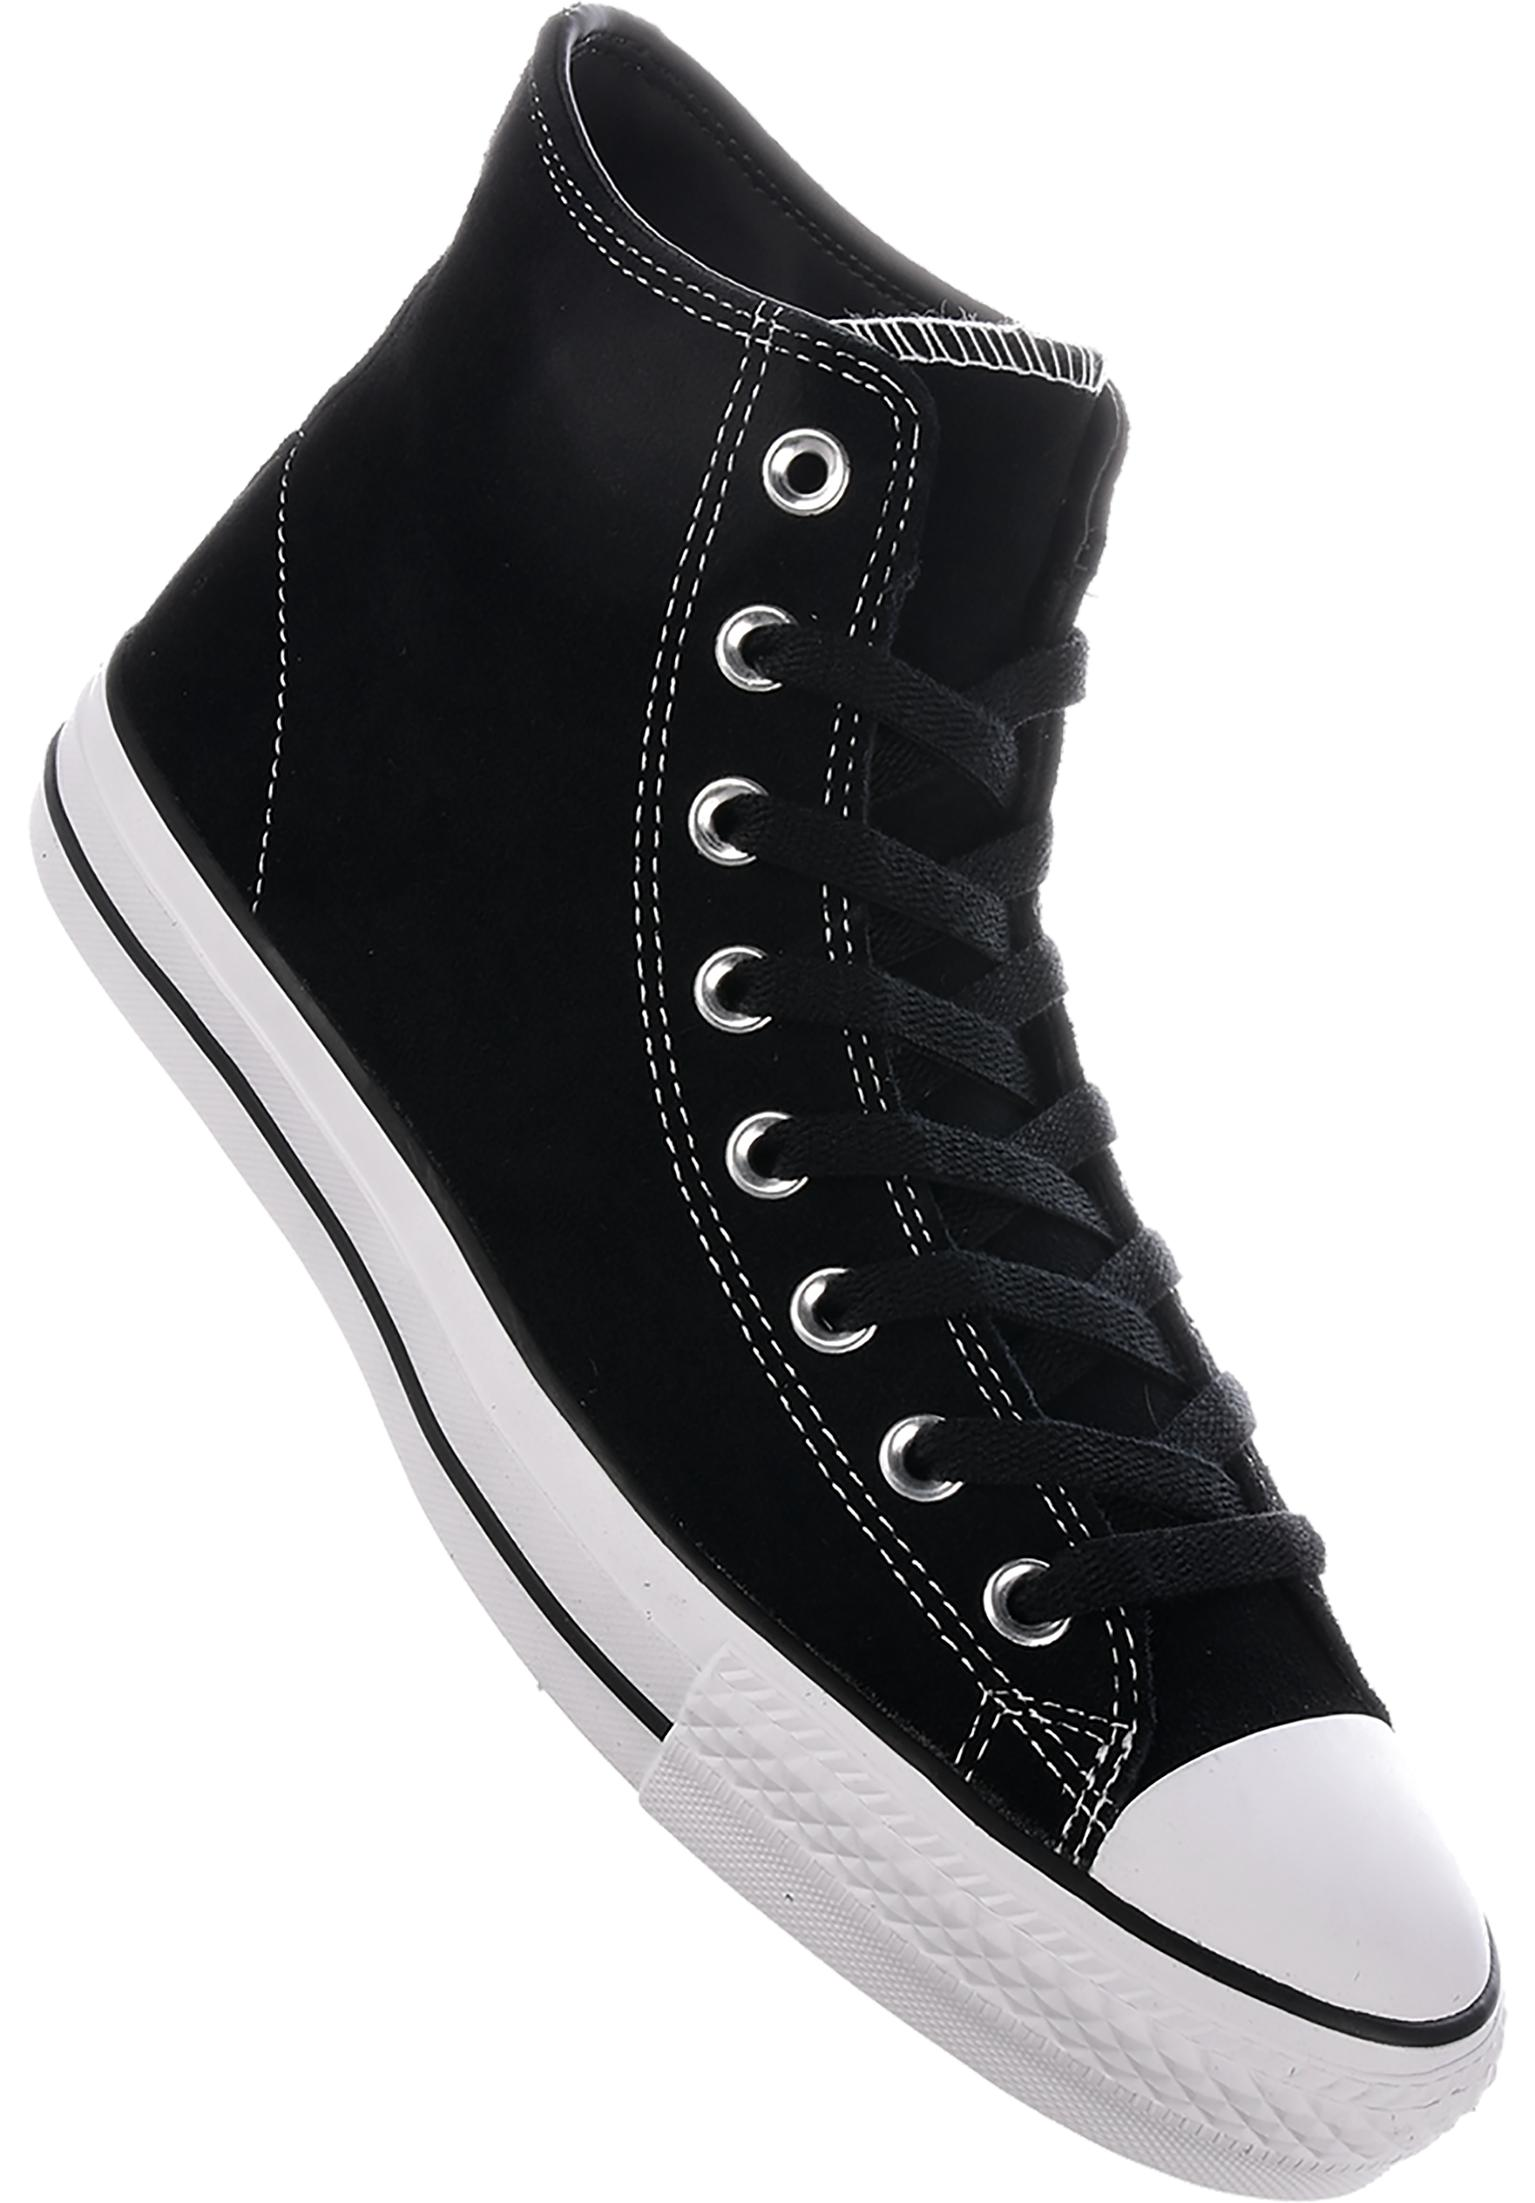 4772ed9c3f75 CTAS Pro Suede Hi Converse CONS All Shoes in black-black-white for Men